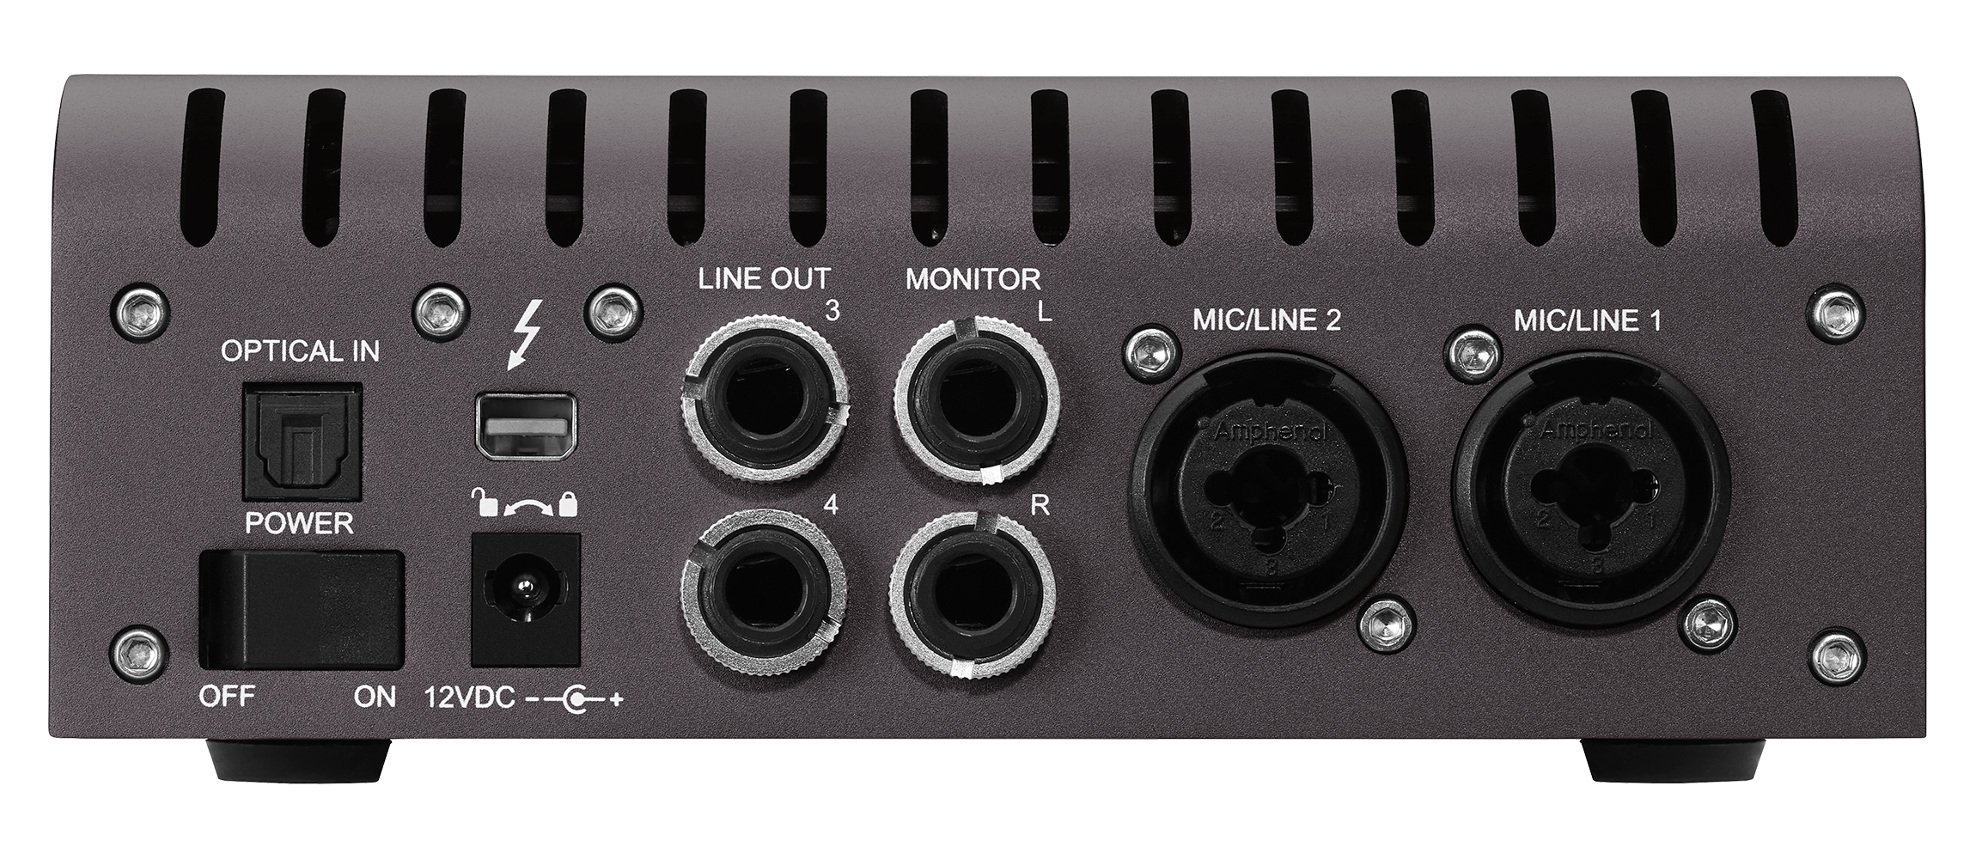 Desktop 2x6 Thunderbolt Audio Interface with Realtime UAD-2 Solo Processing